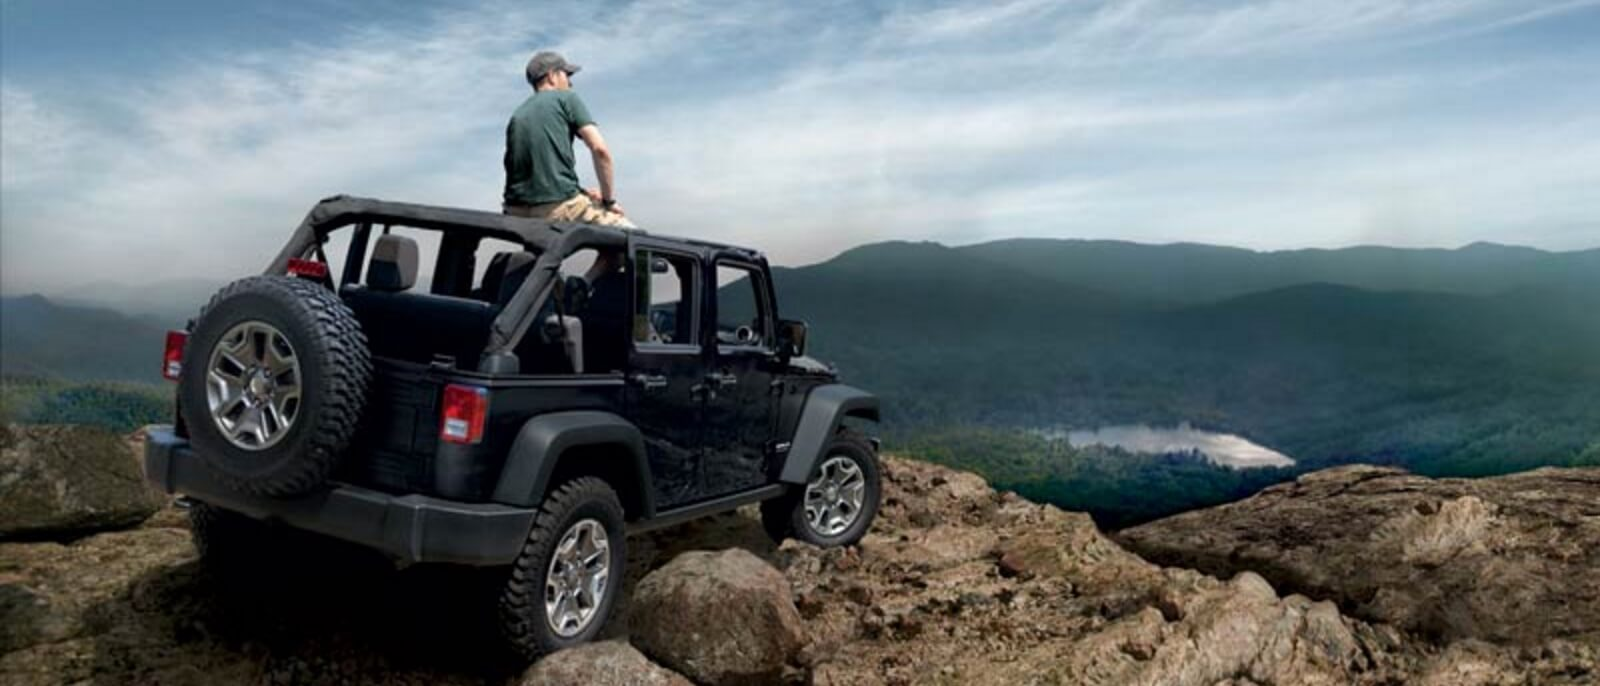 2016 Jeep Wrangler on mountain top